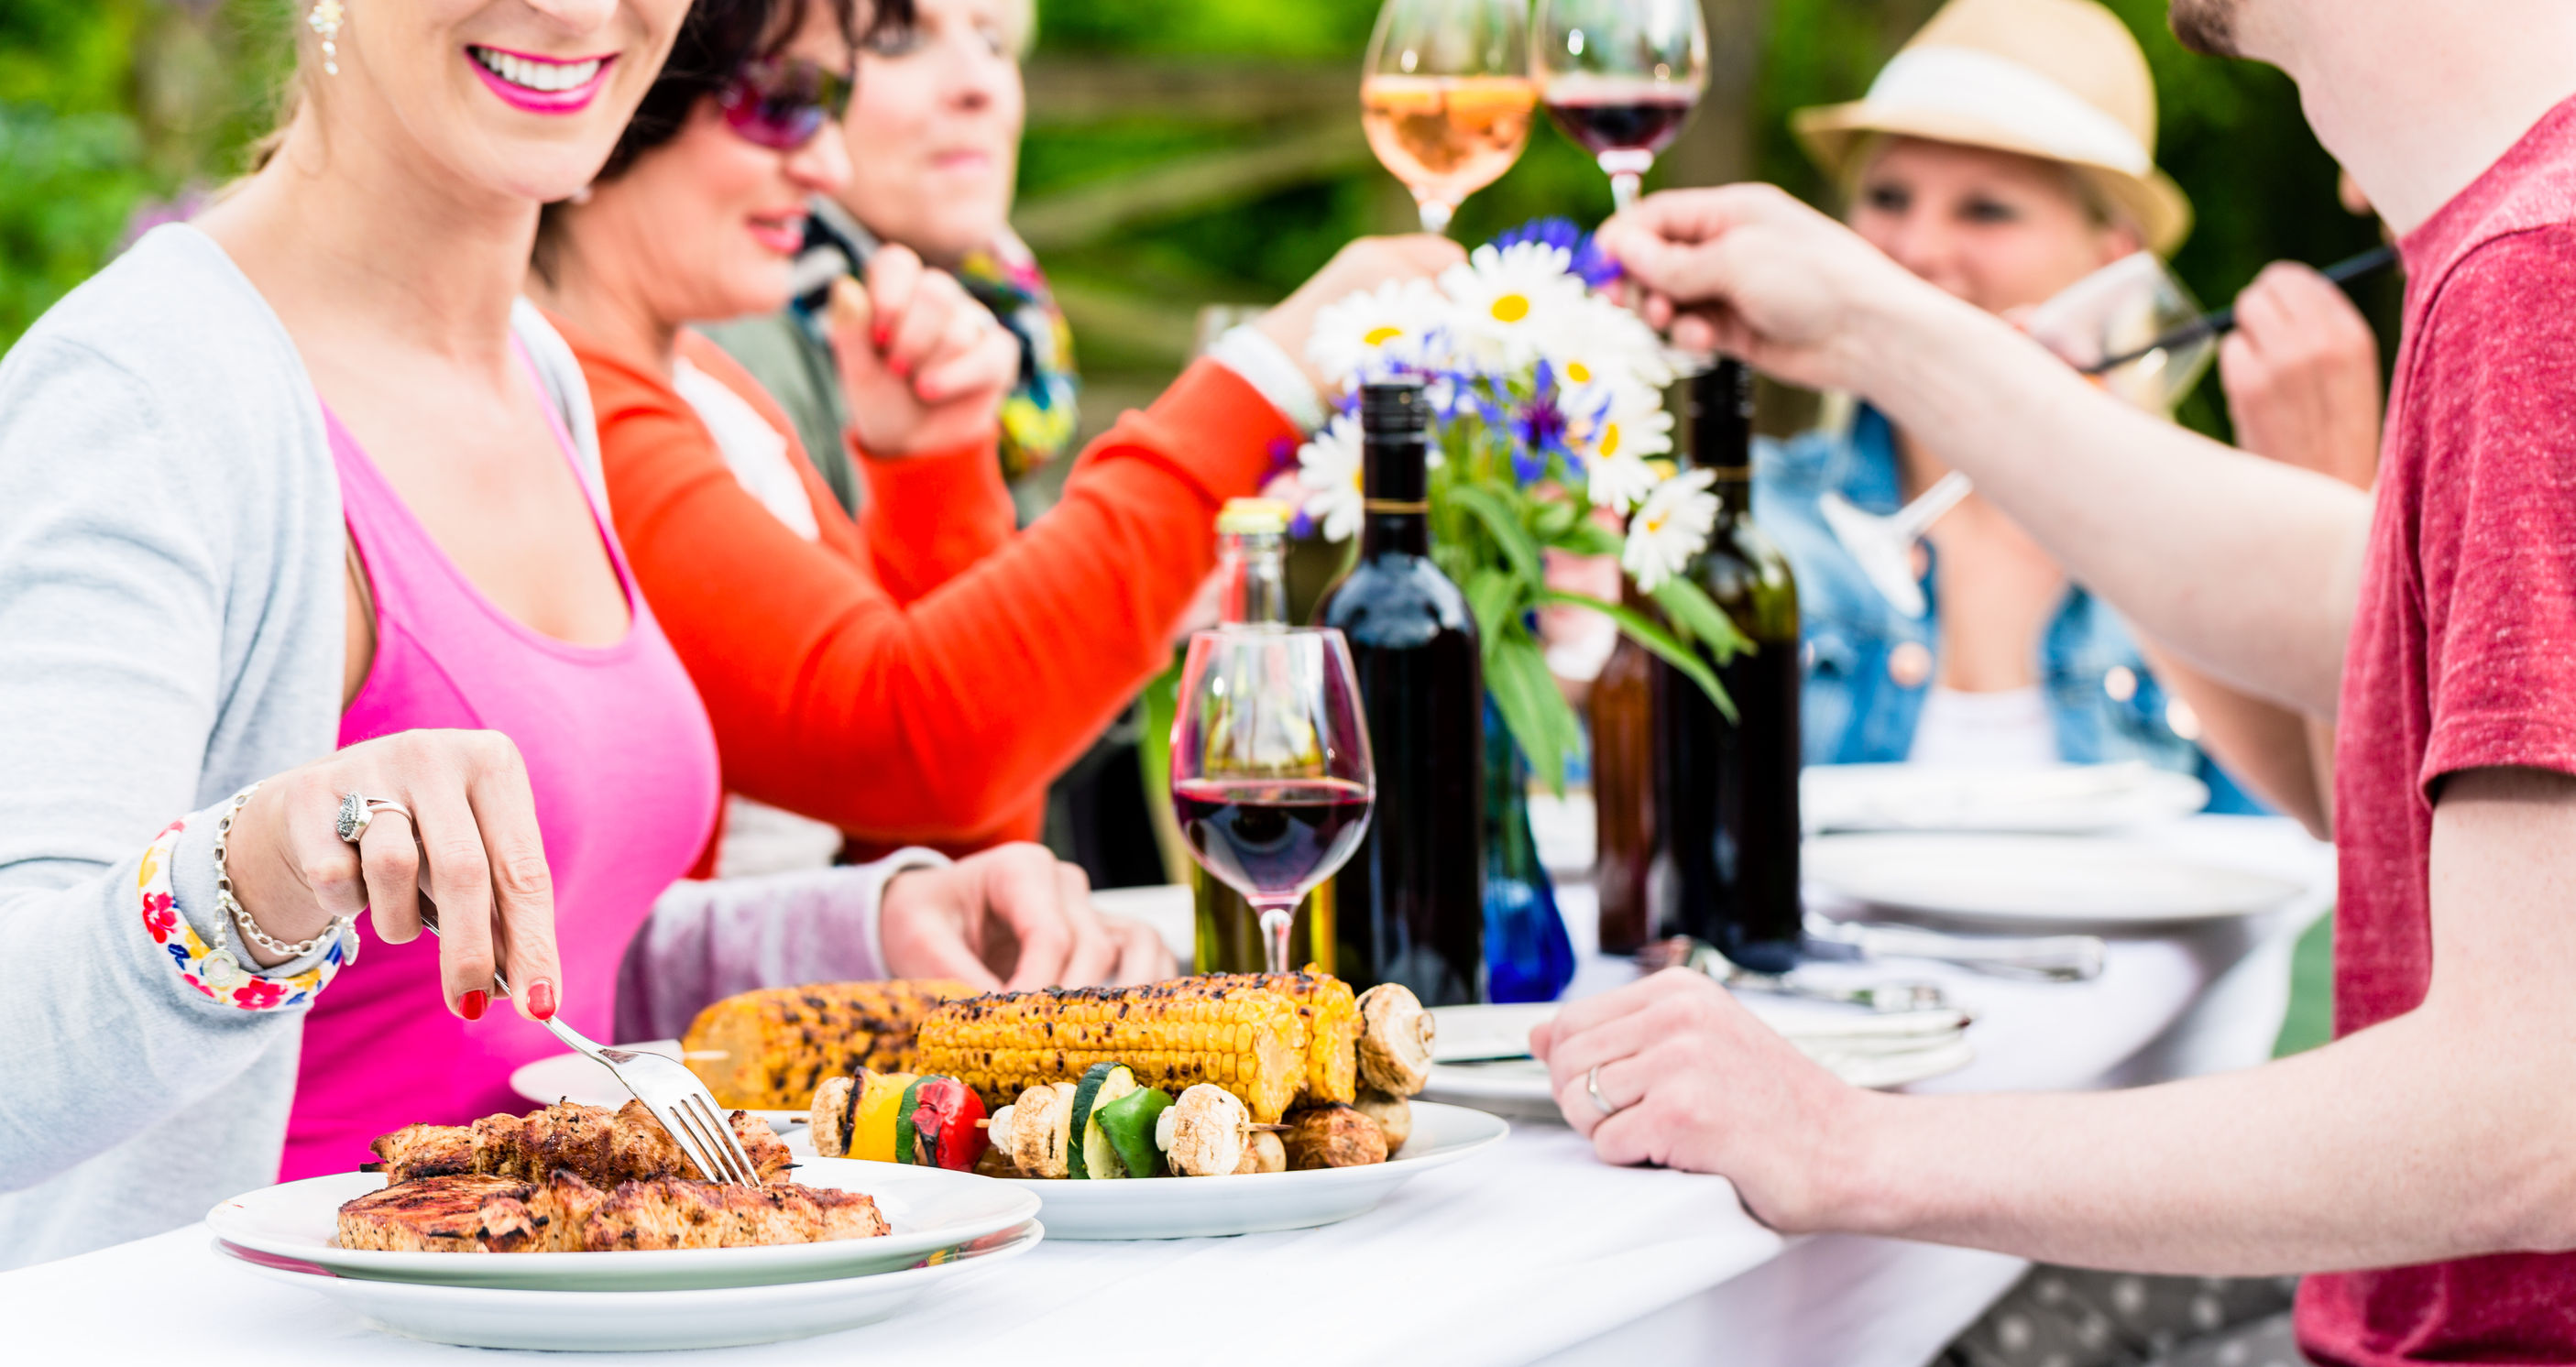 42876117 - women and men celebrating garden party, eating and drinking together